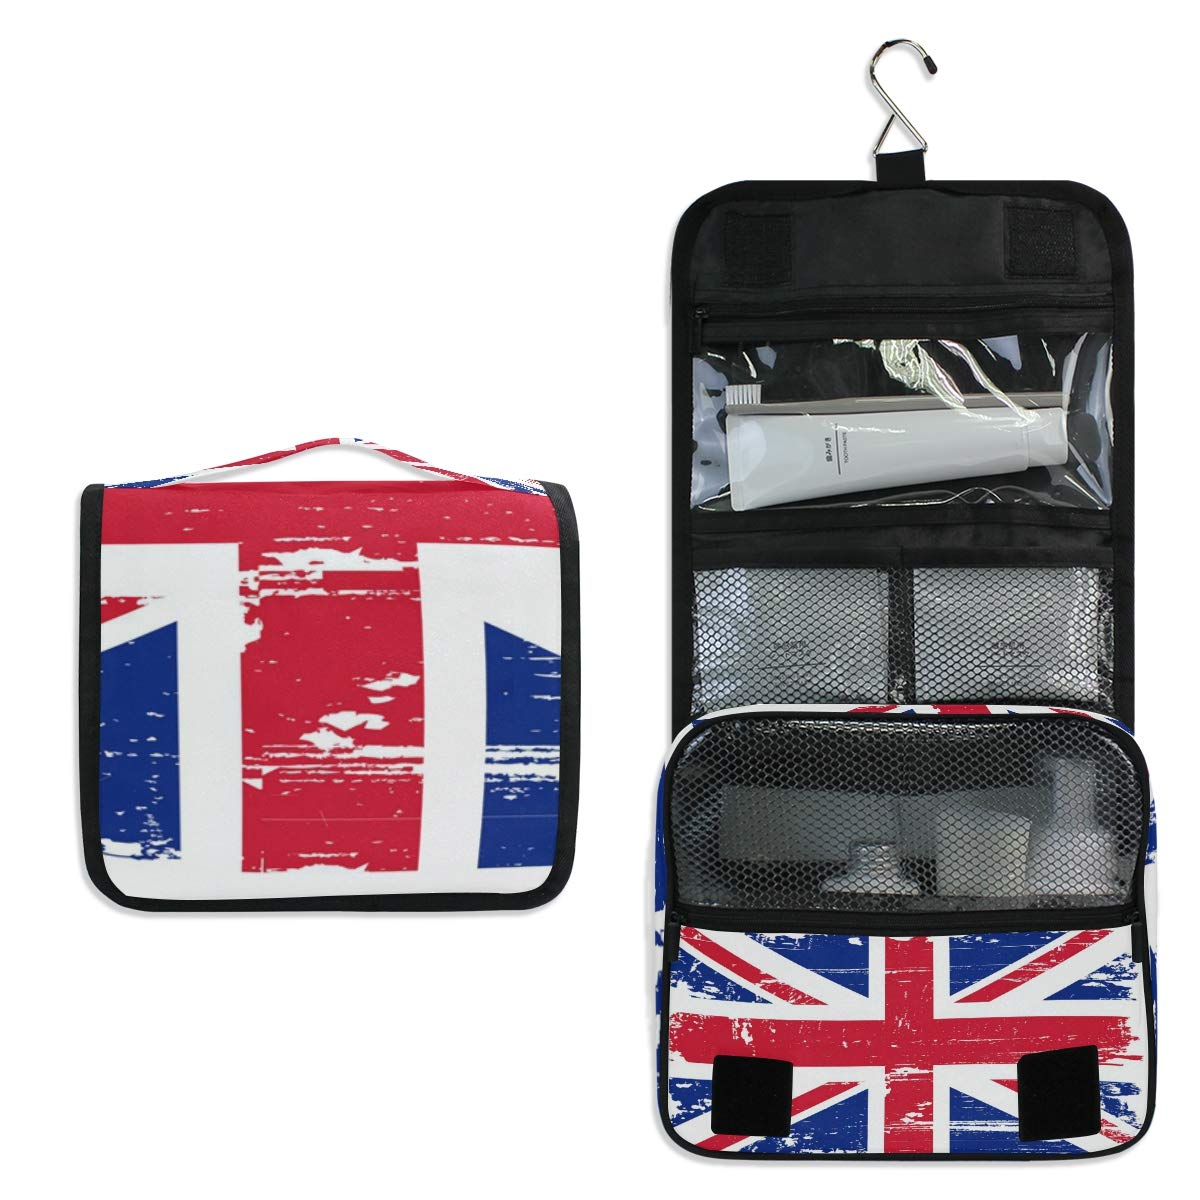 Hanging Travel Toiletry Bag - British Flag Cosmetic Makeup Bag Pouch Organizer for Women and Girls Waterproof